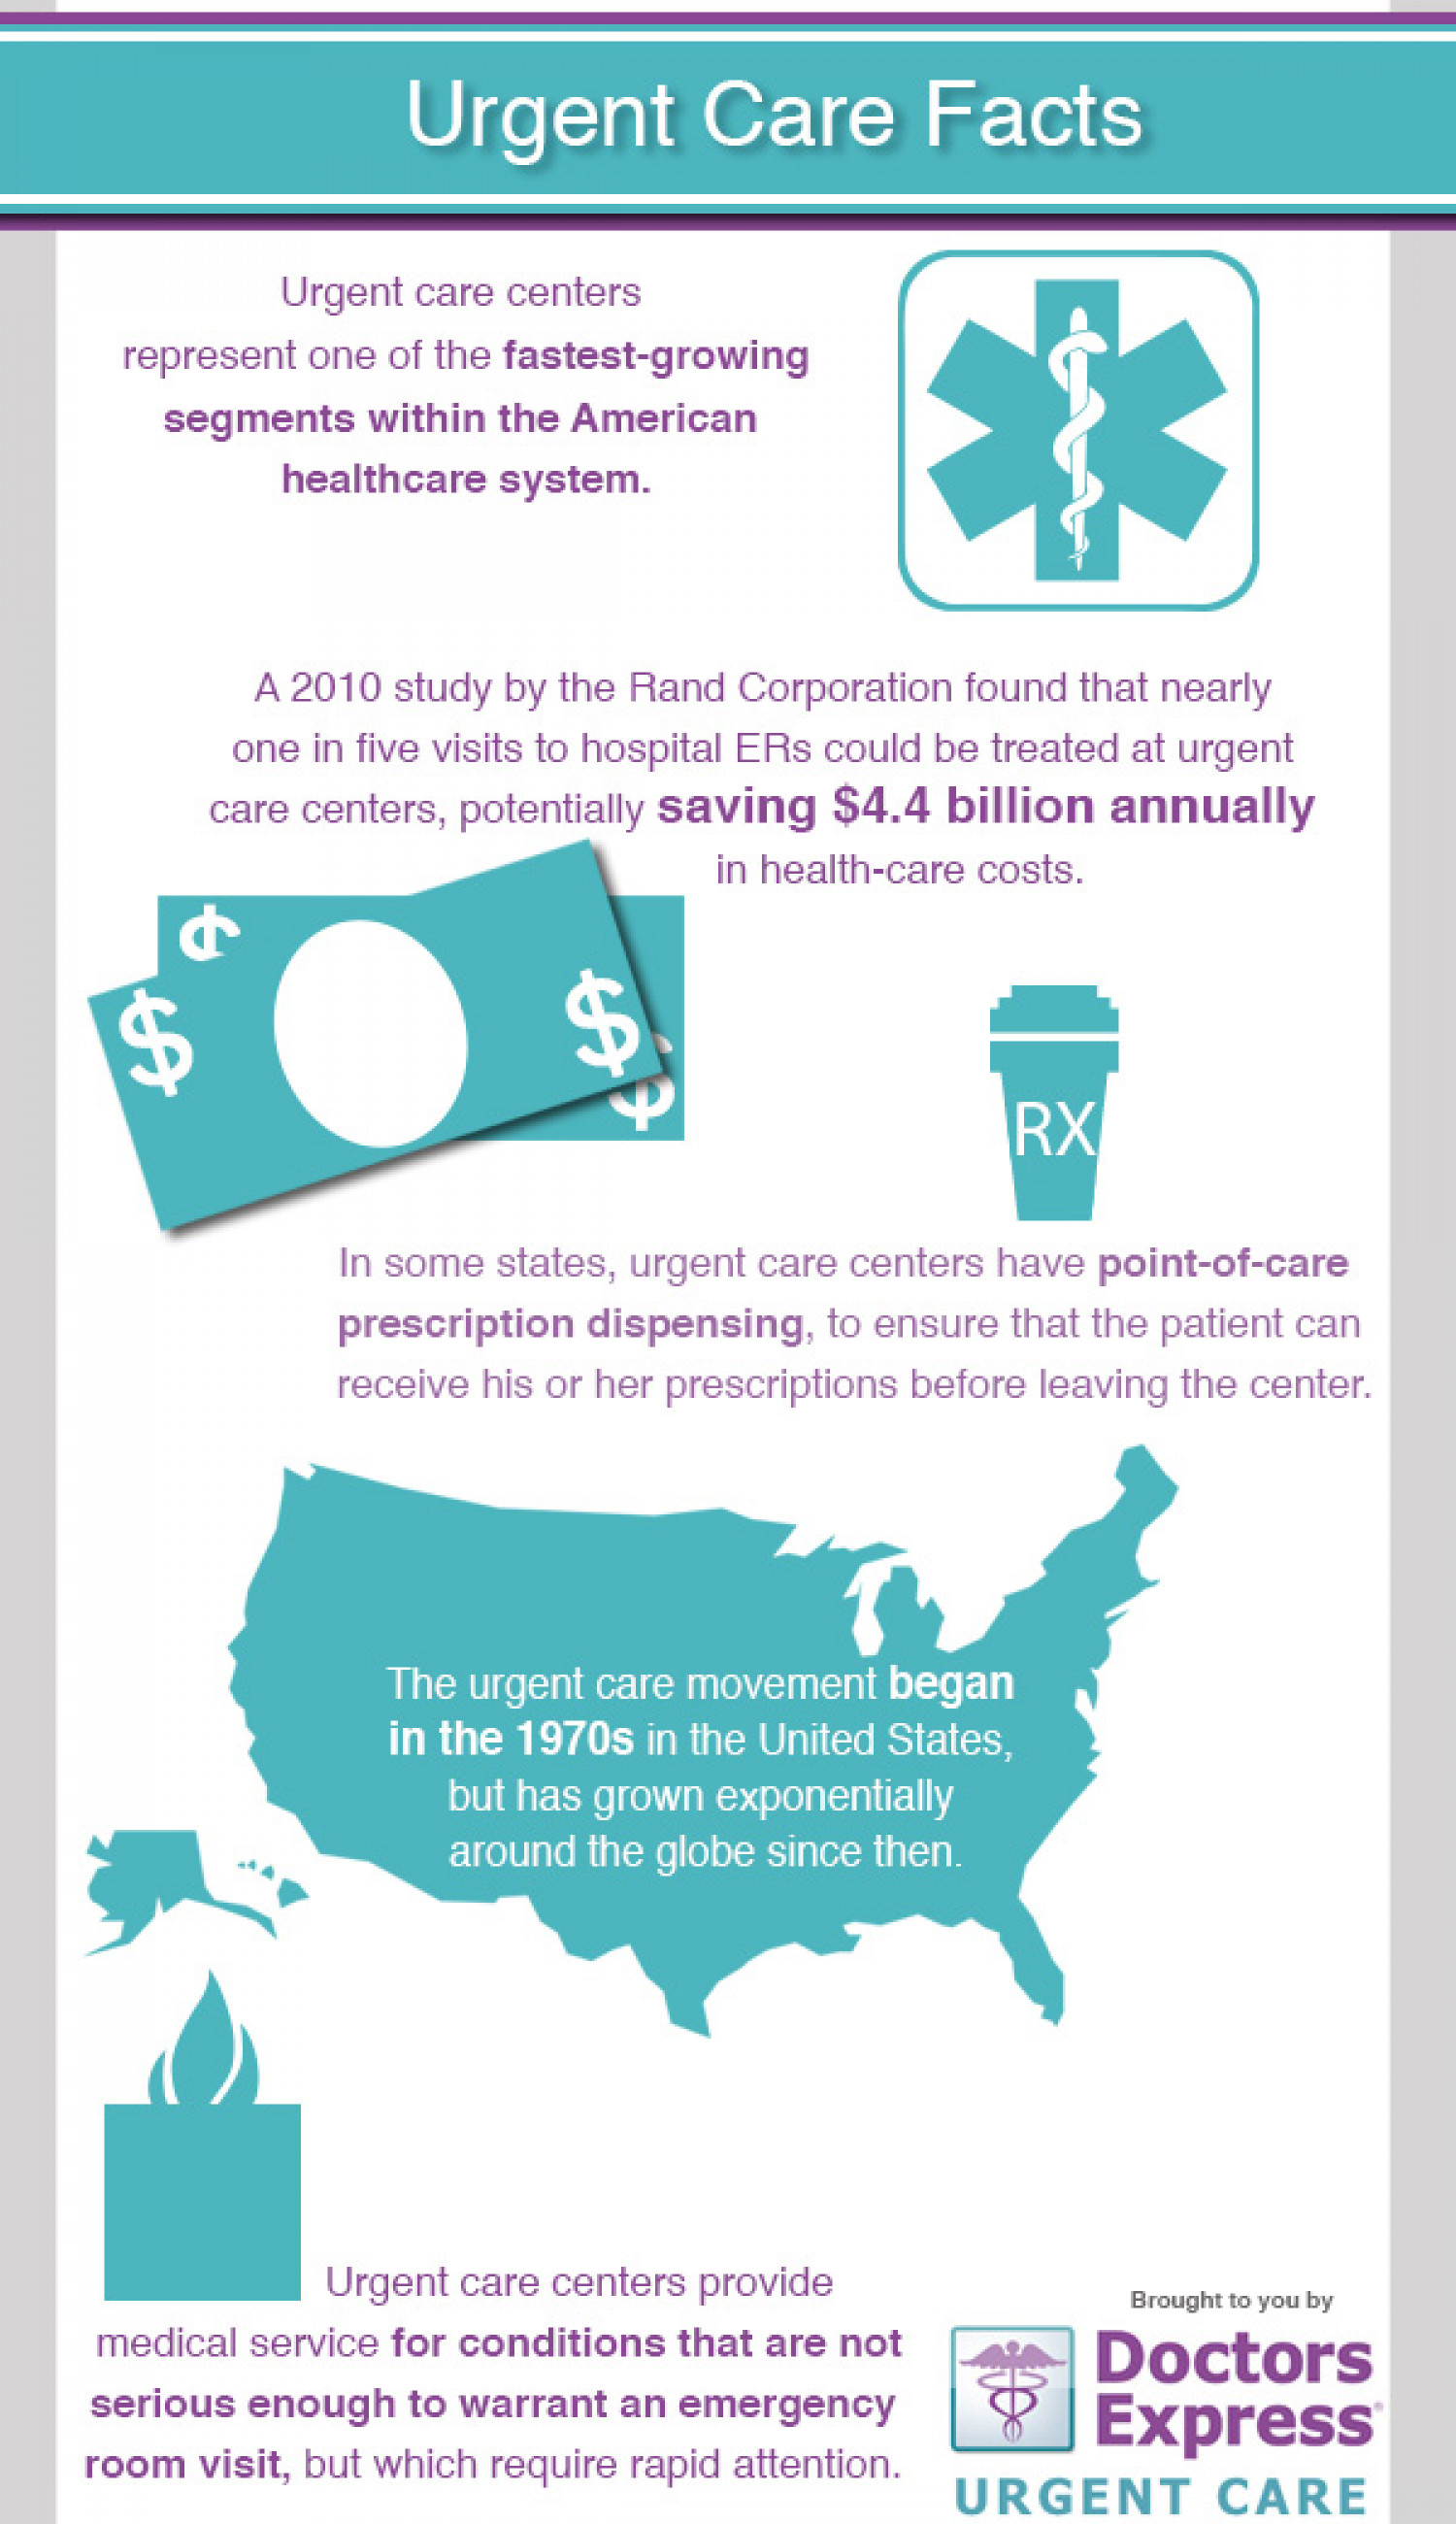 Urgent Care Facts Infographic